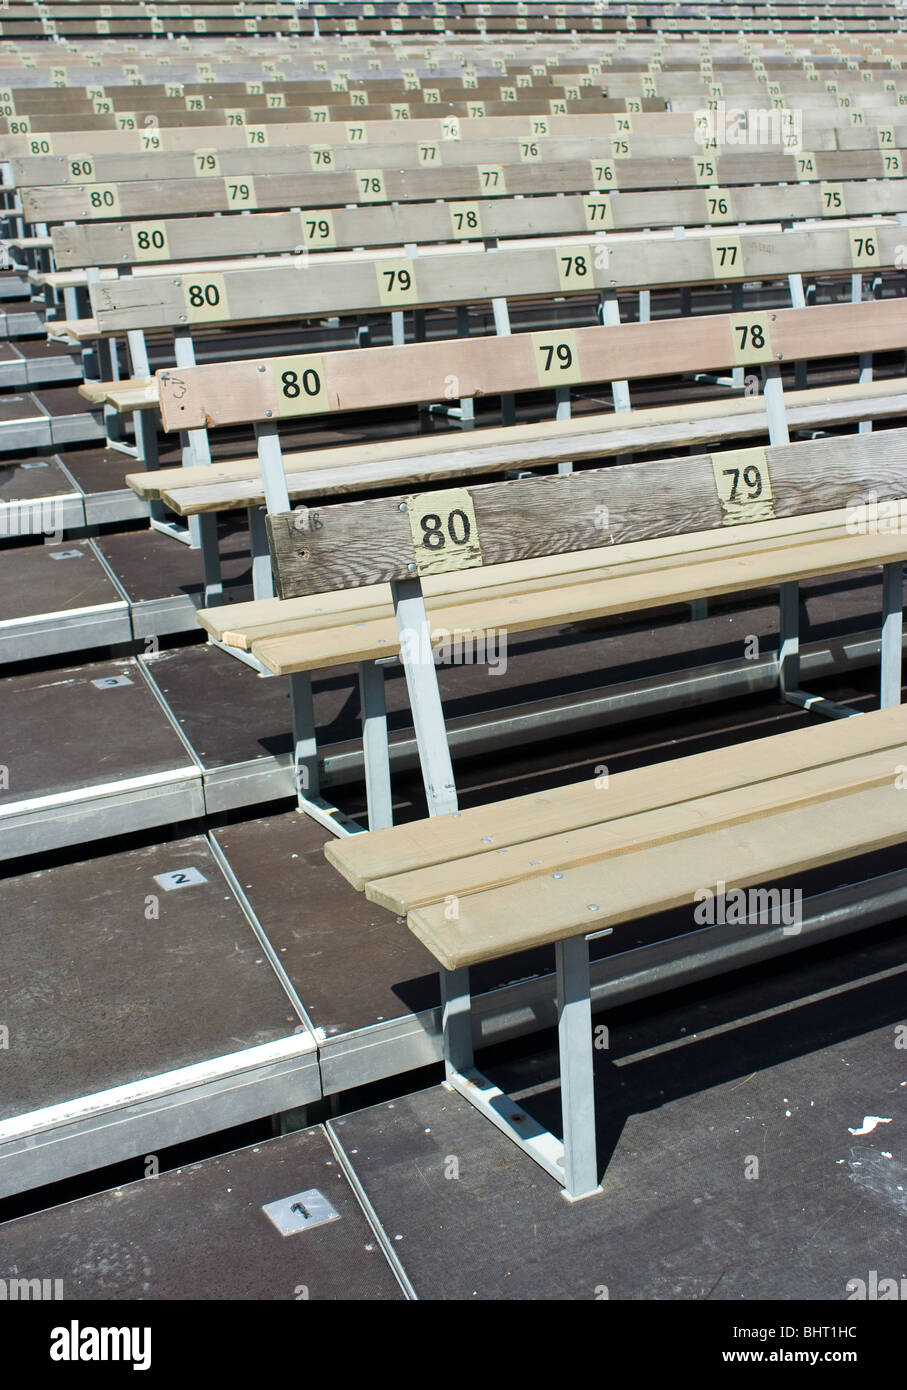 Rows of benches in an outdoor arena - Stock Image